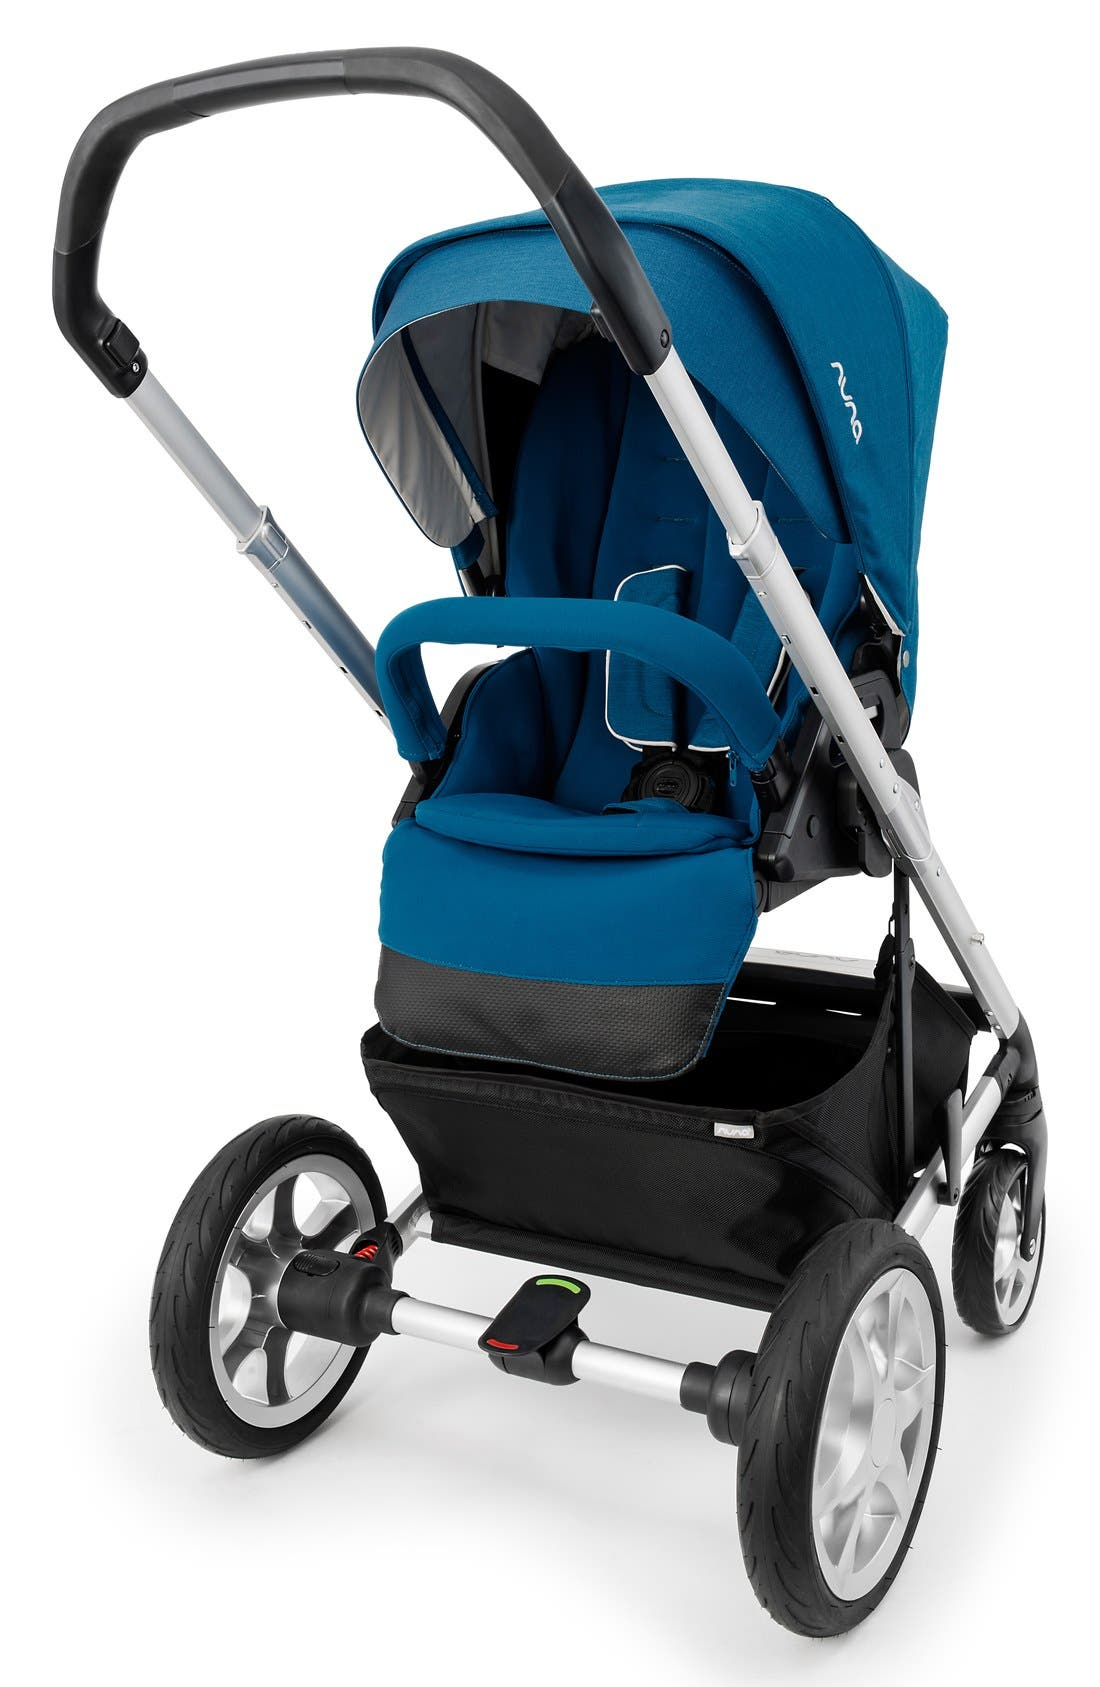 Alternate Image 1 Selected - nuna 'MIXX™' Three Mode Stroller with All Terrain Tires